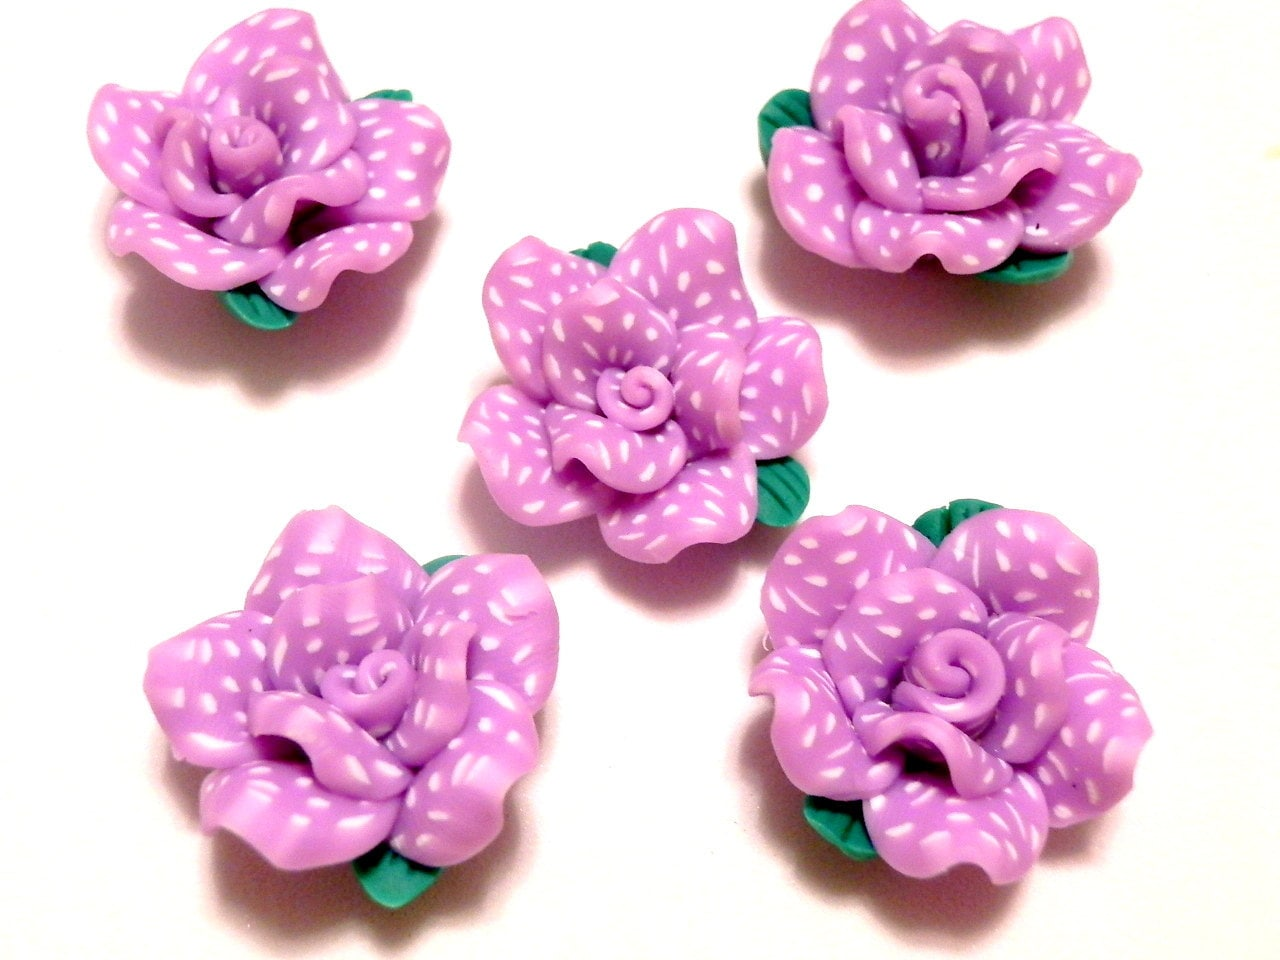 6 Fimo Polymer Clay Violet White Flower Fimo Beads 25mm Etsy